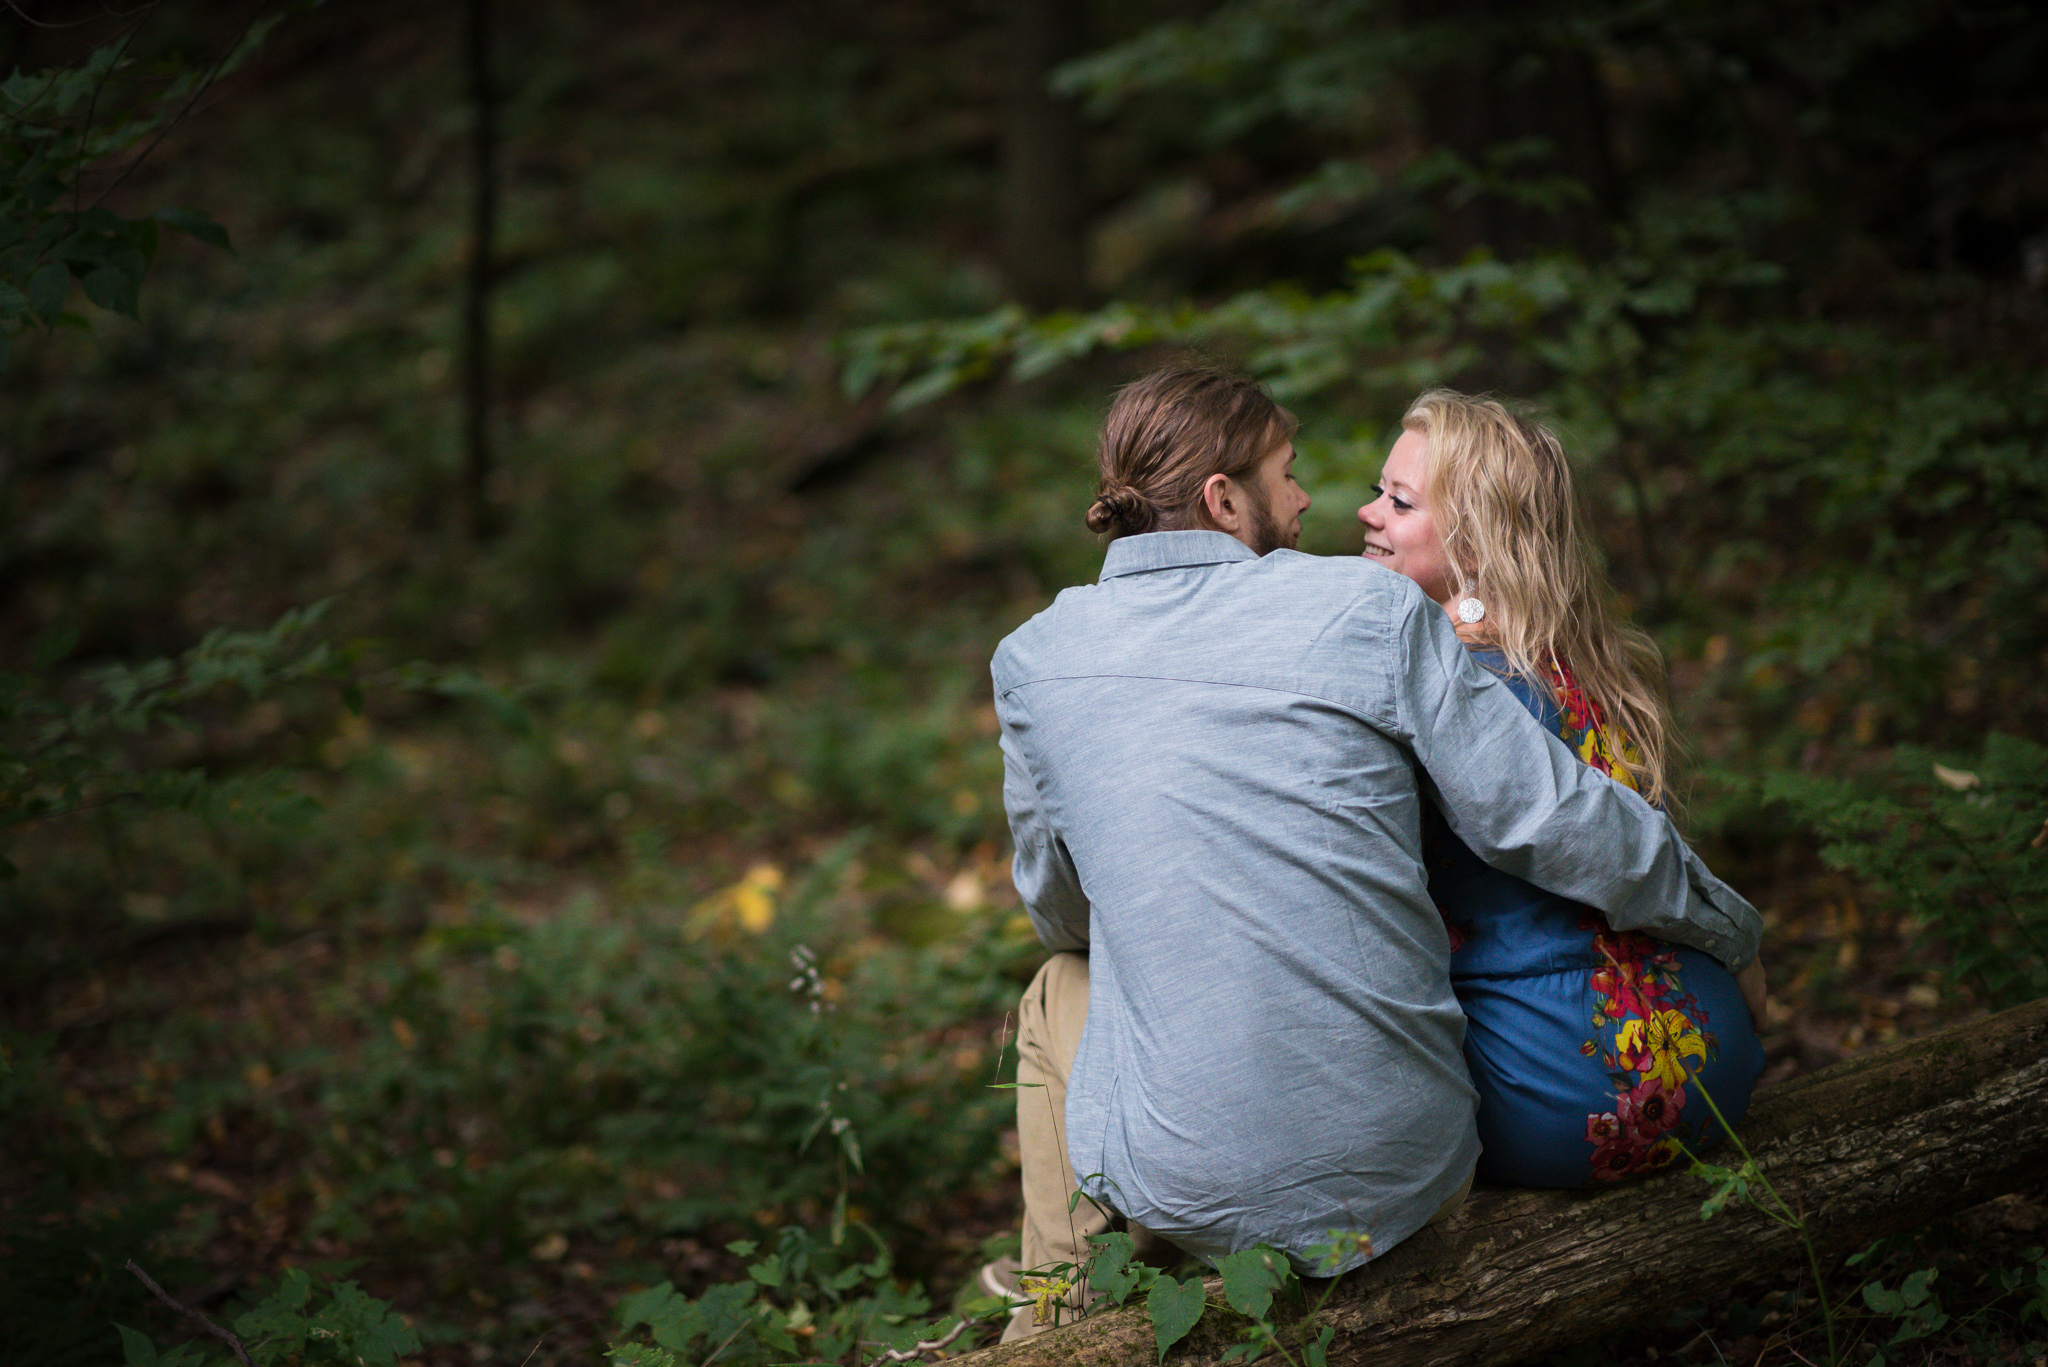 Elk-mountain-wedding-engagement-photography-uniondale-susquehanna-county-steven-serge-photography-19.jpg